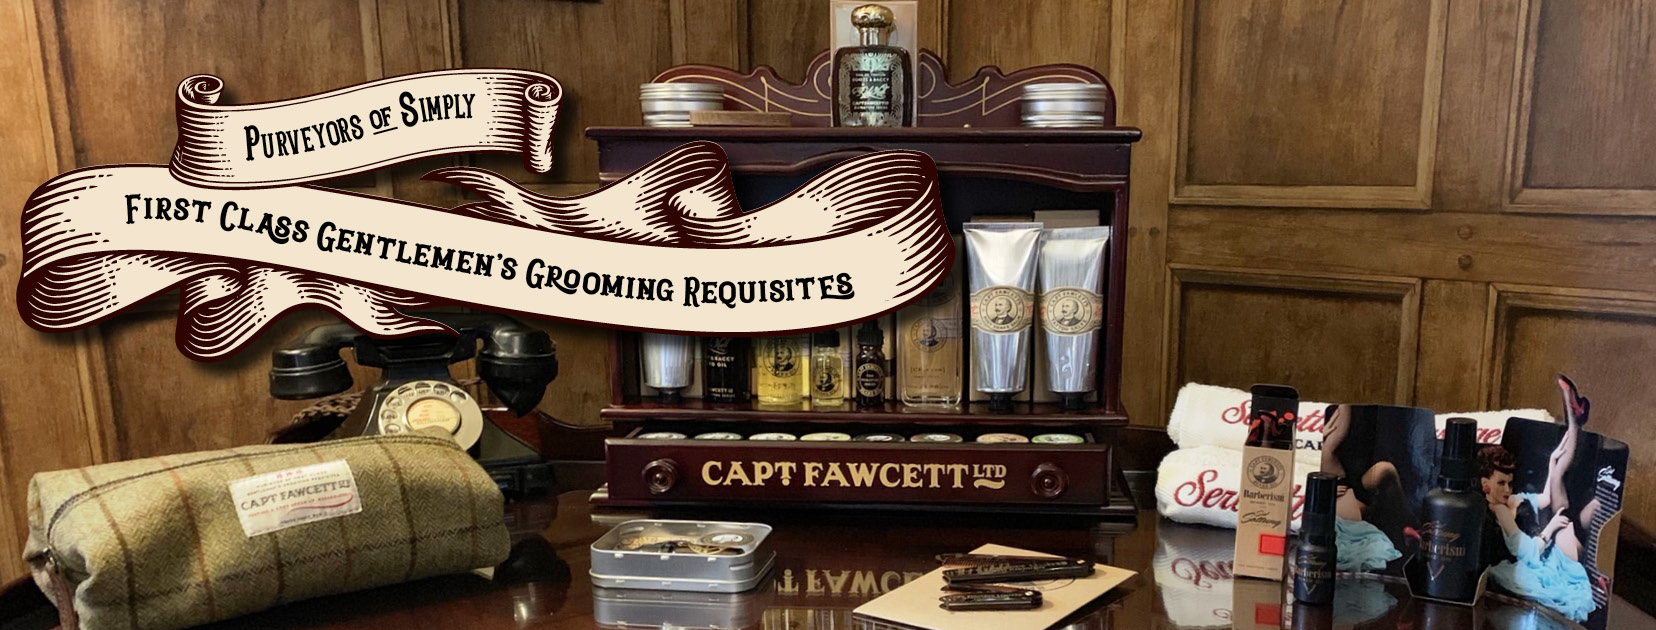 Captain Fawcett products at West Man Barbershop Aberdeenshire